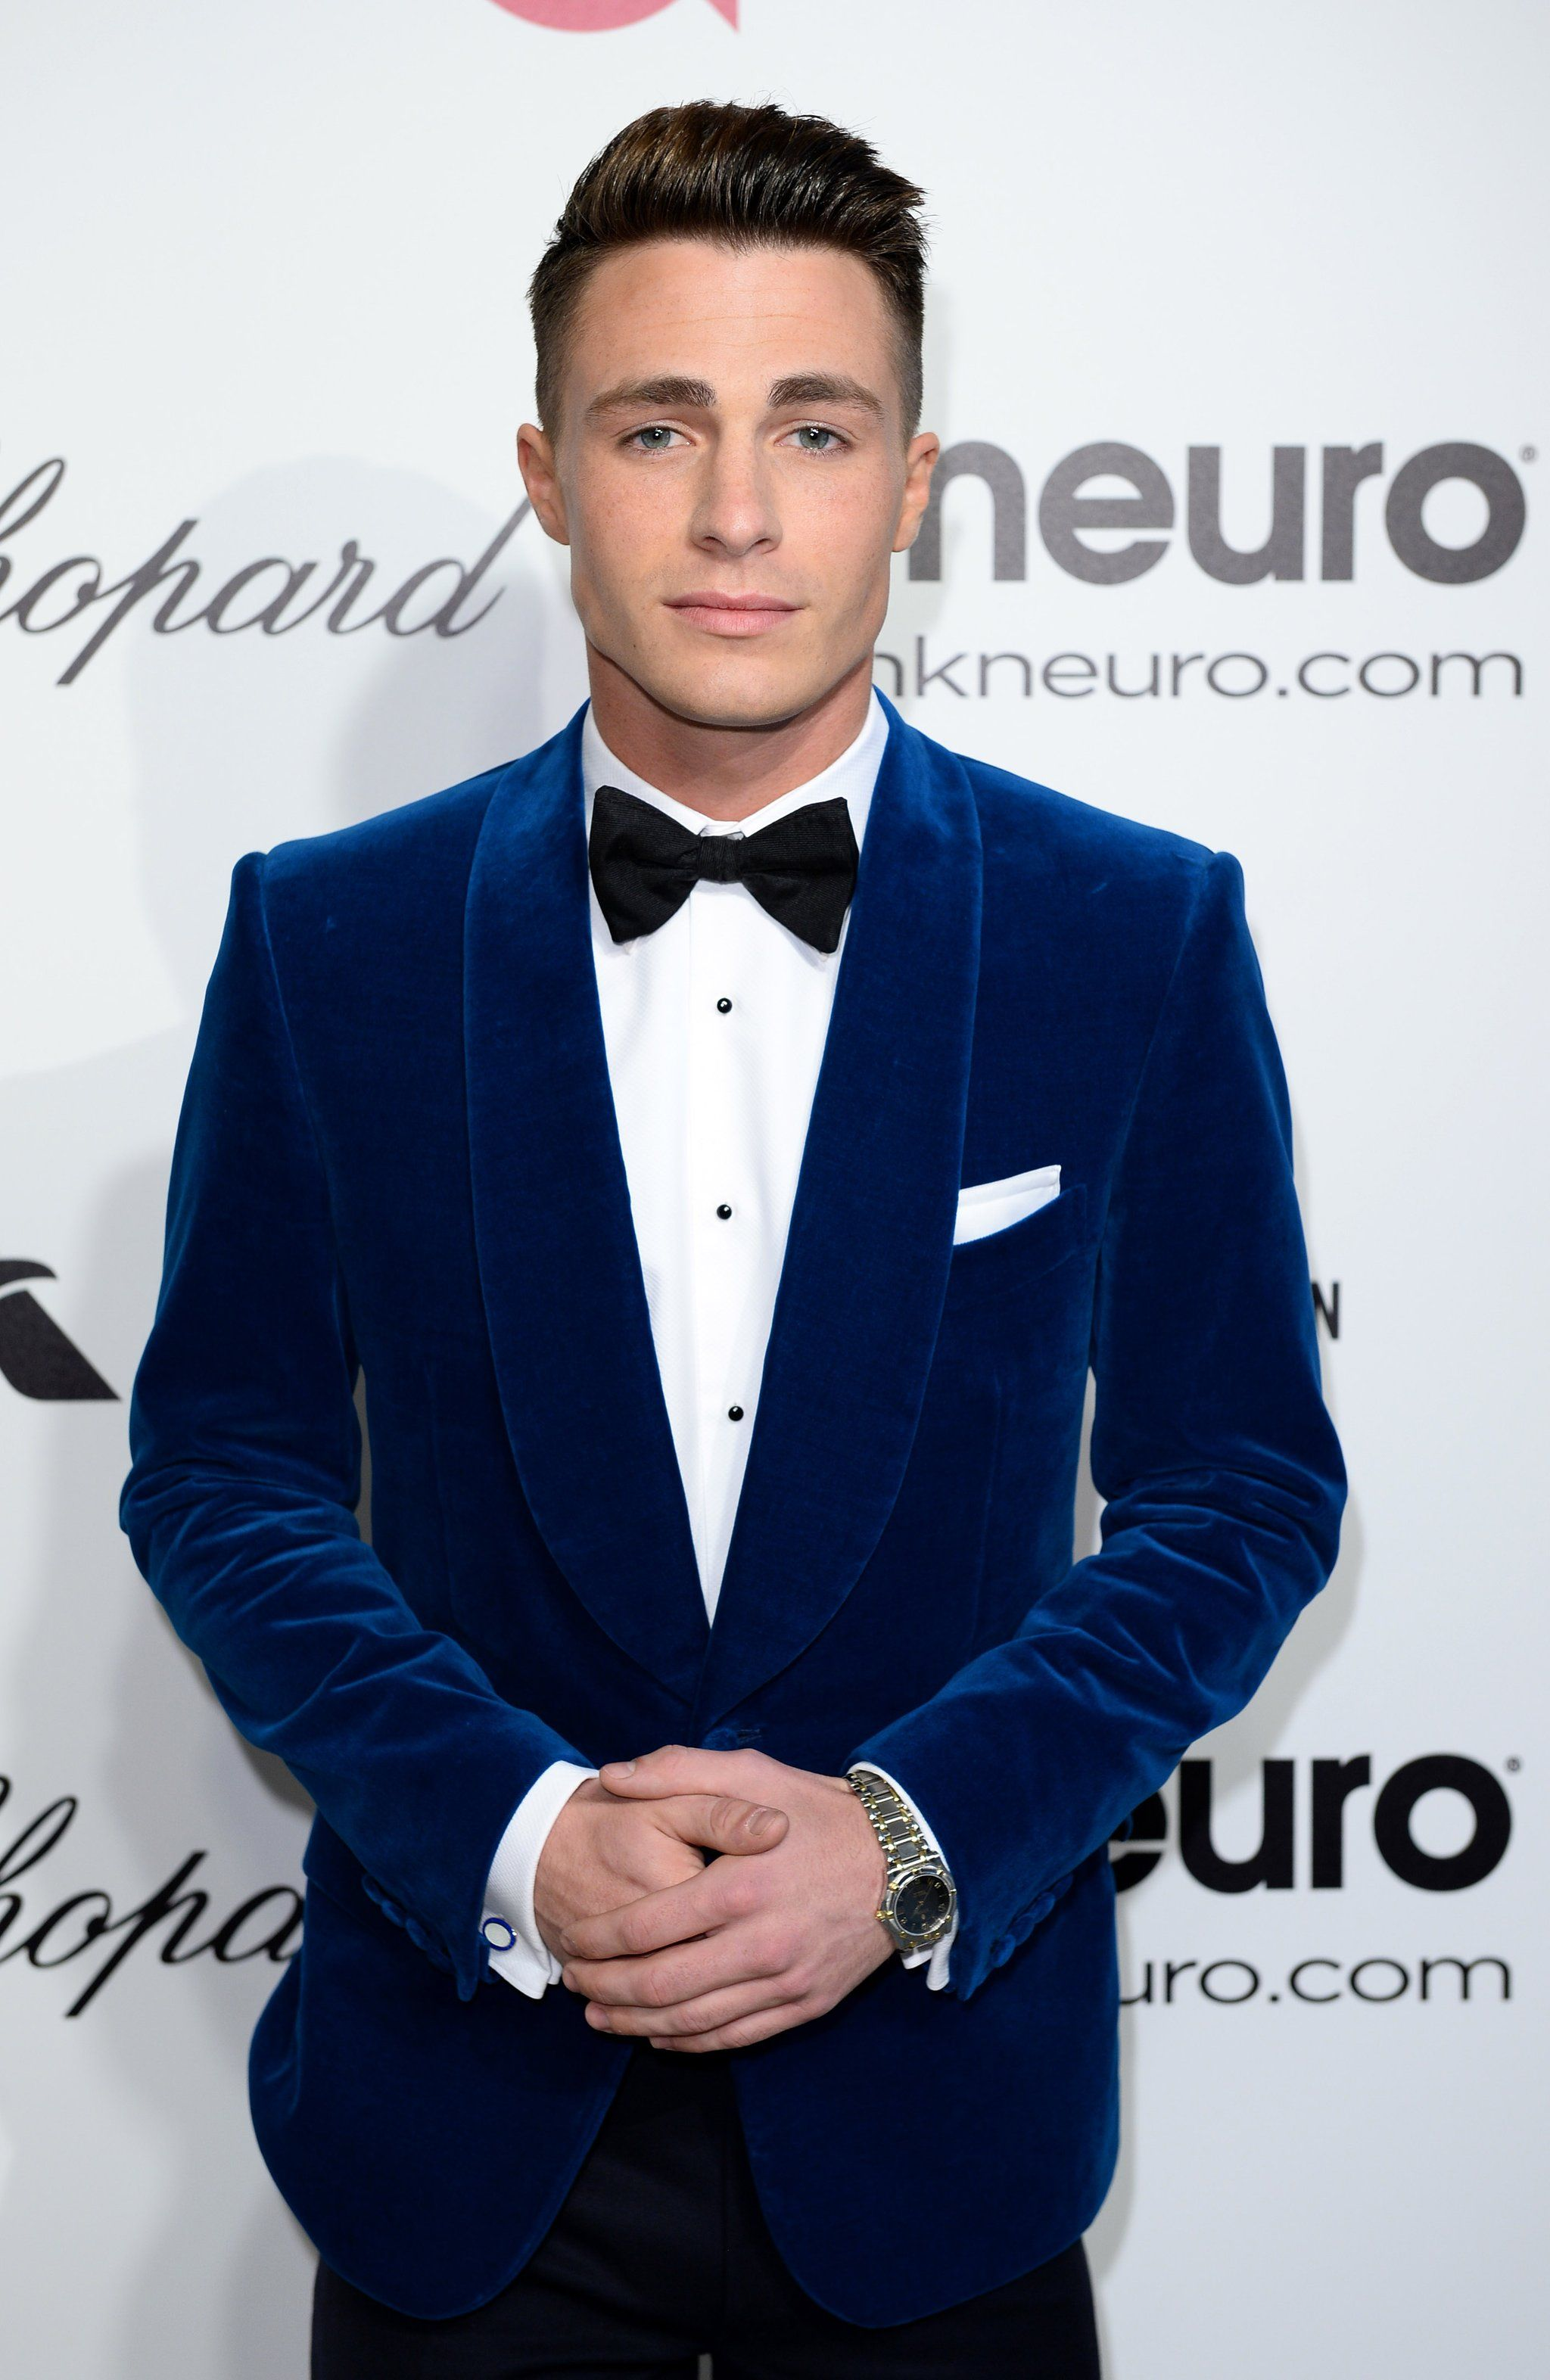 This On-Point Suit and Bow Tie Combo   Colton haynes and Men wear